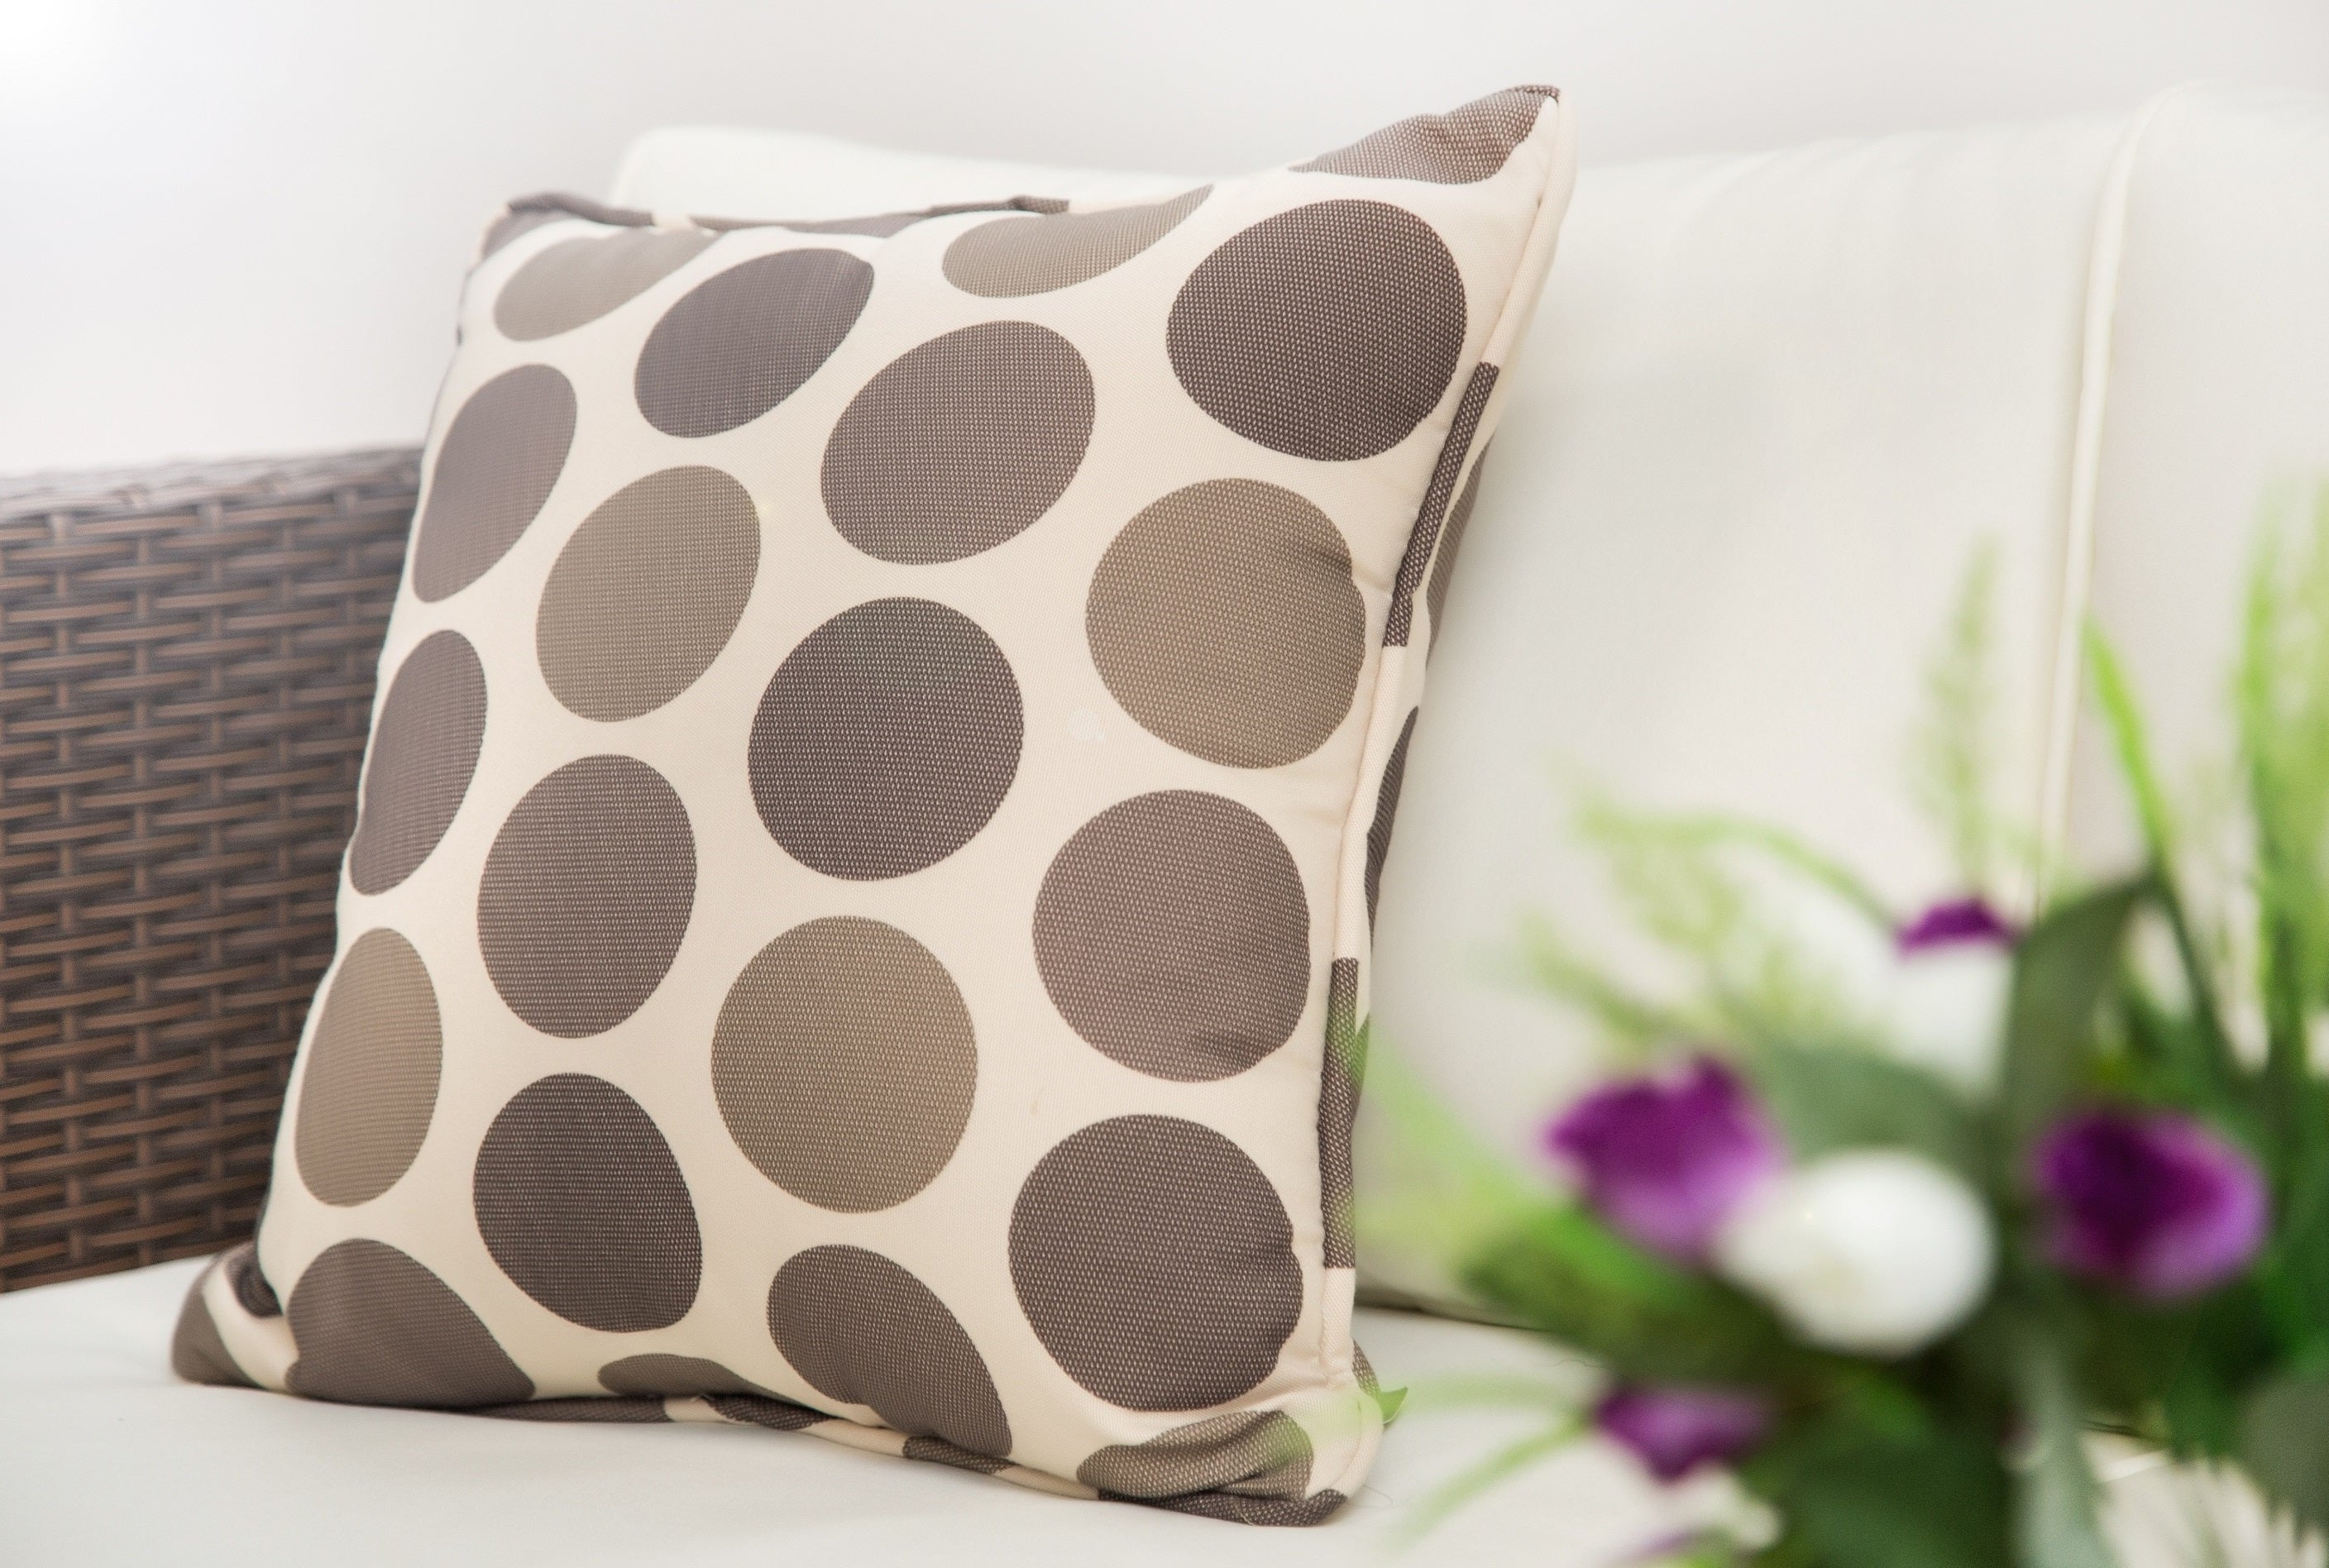 Outdoor Pillow in Brown Polka Dots - Set of 2